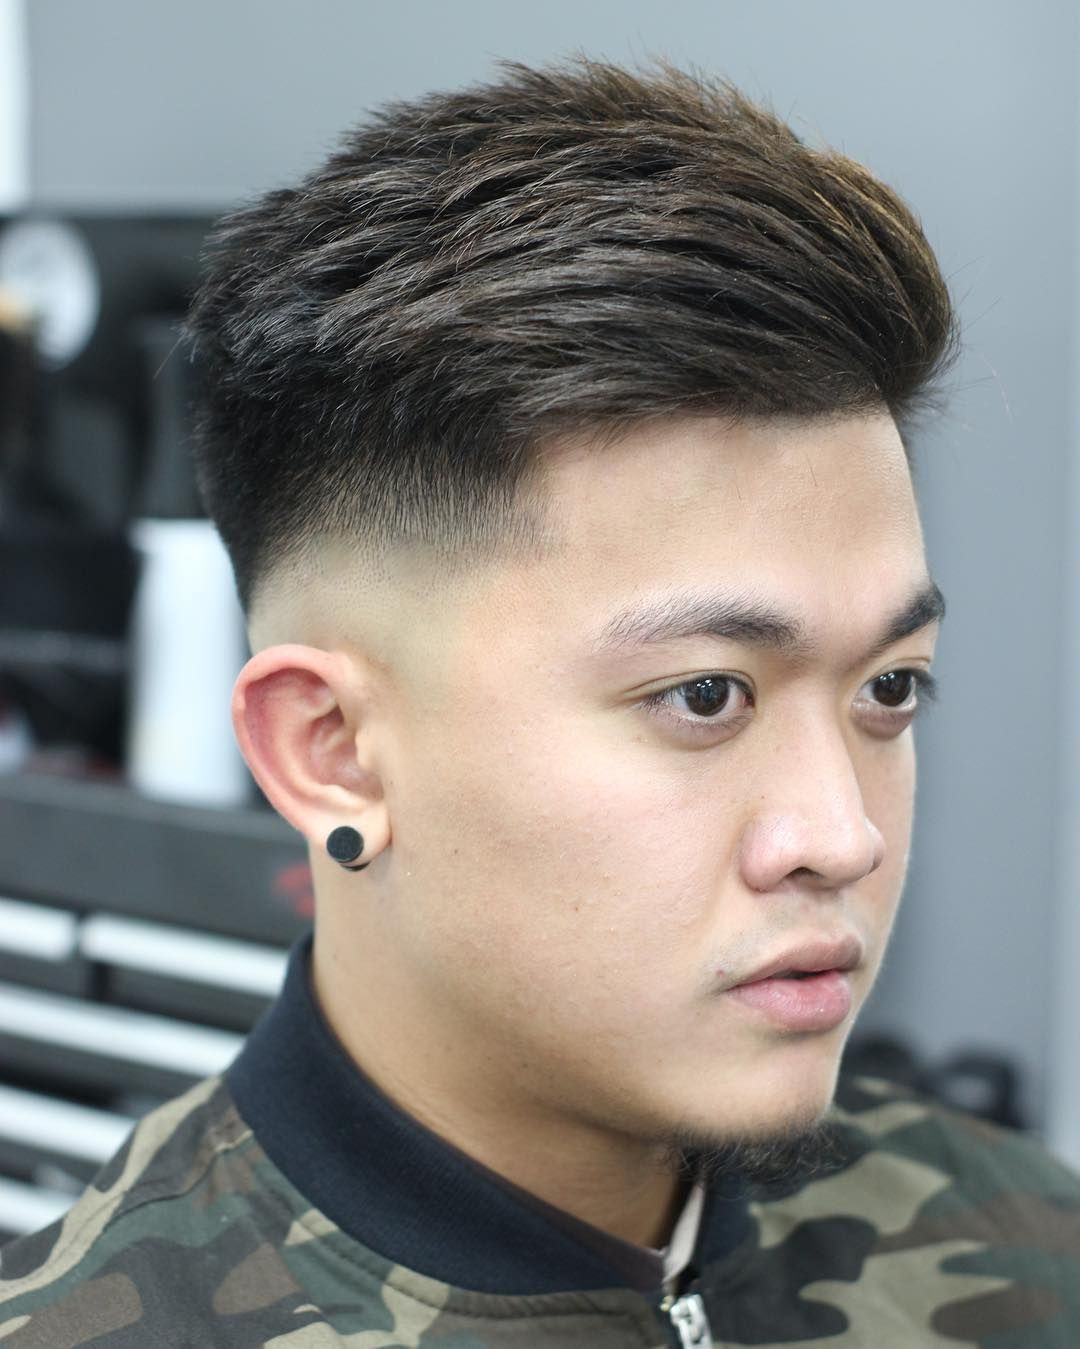 asian man hairstyle | boys haircuts 2018 | pinterest | low fade